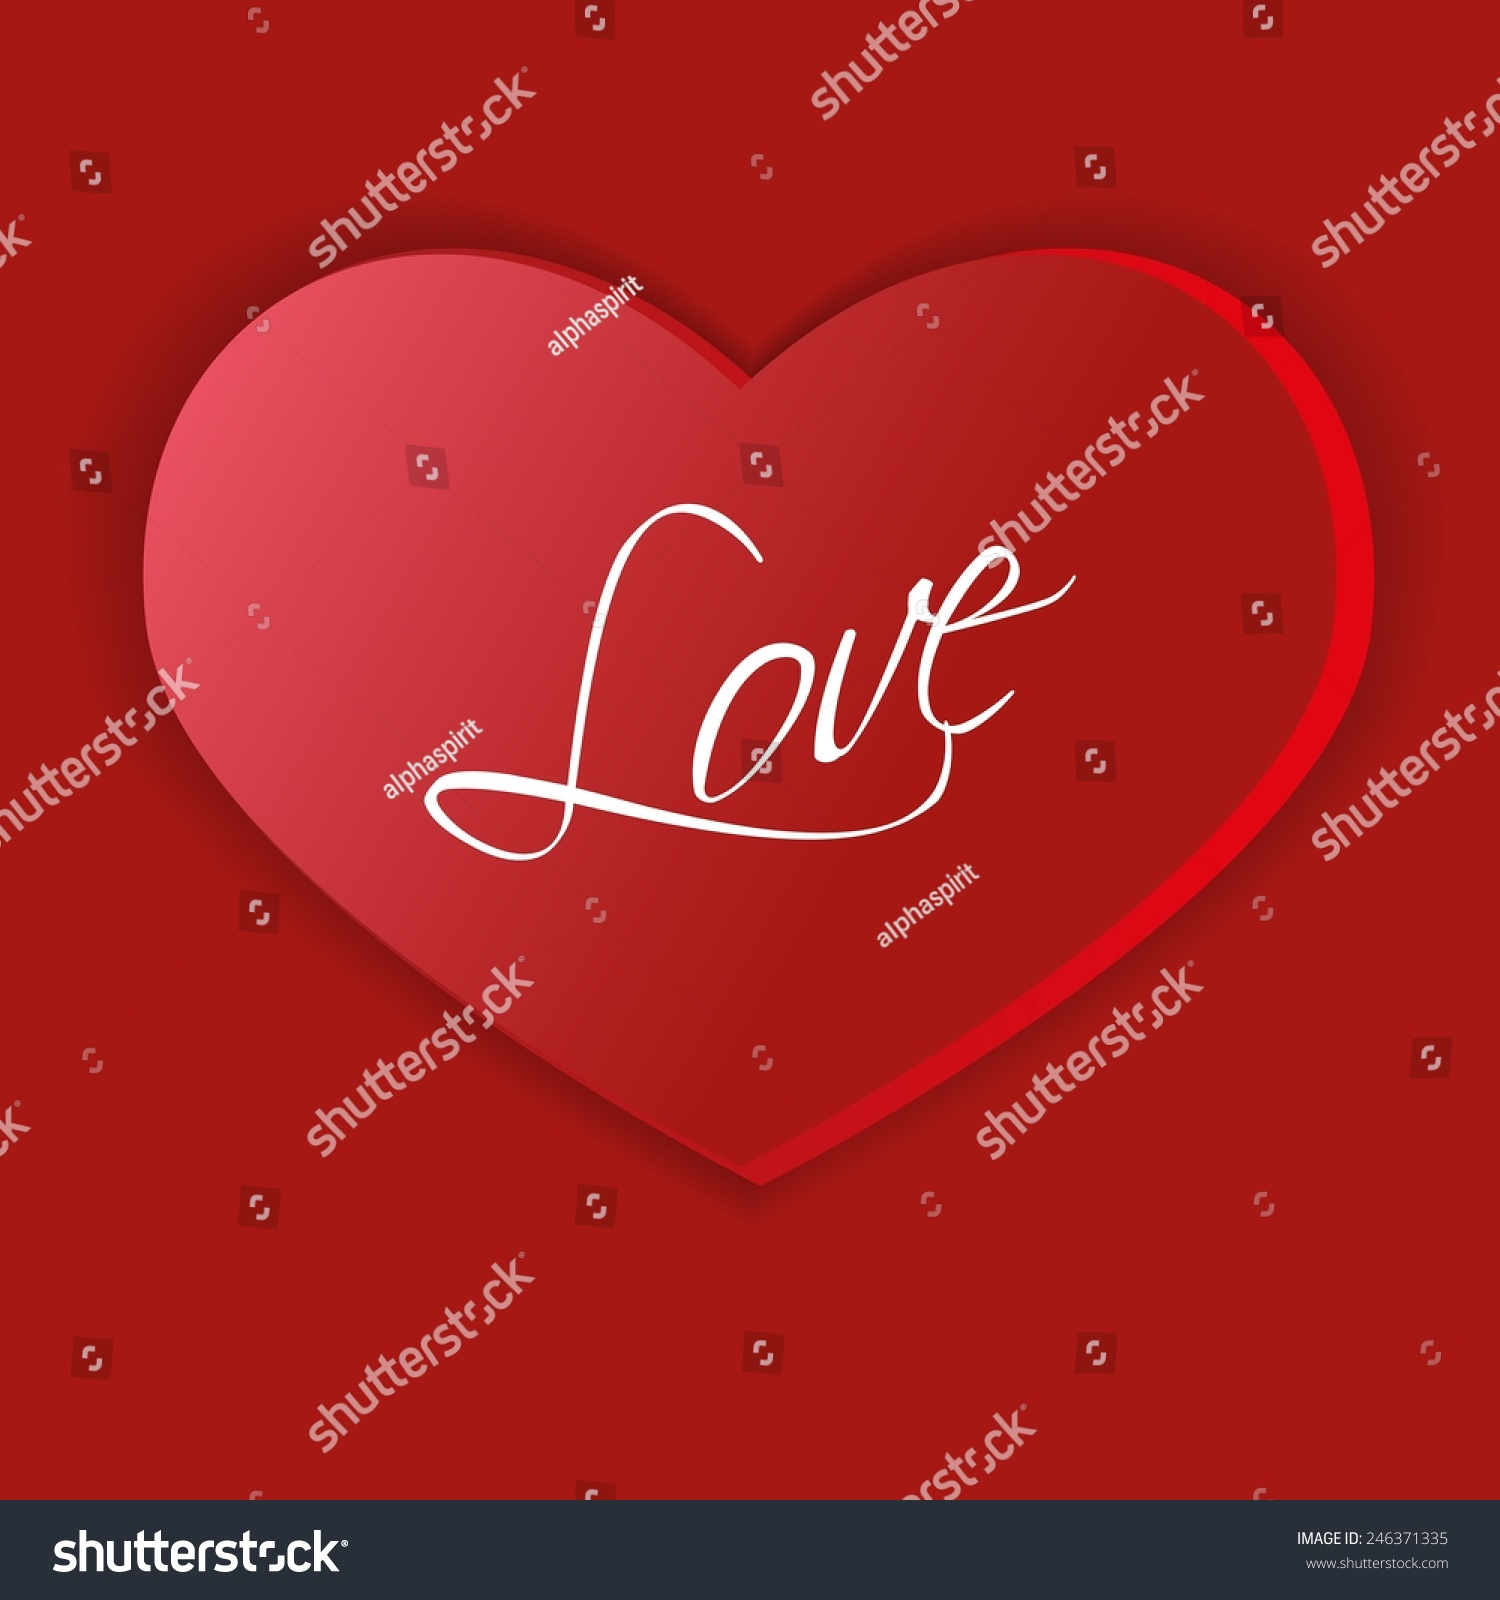 Big heart symbol love stock vector 246371335 shutterstock big heart as a symbol of love buycottarizona Image collections